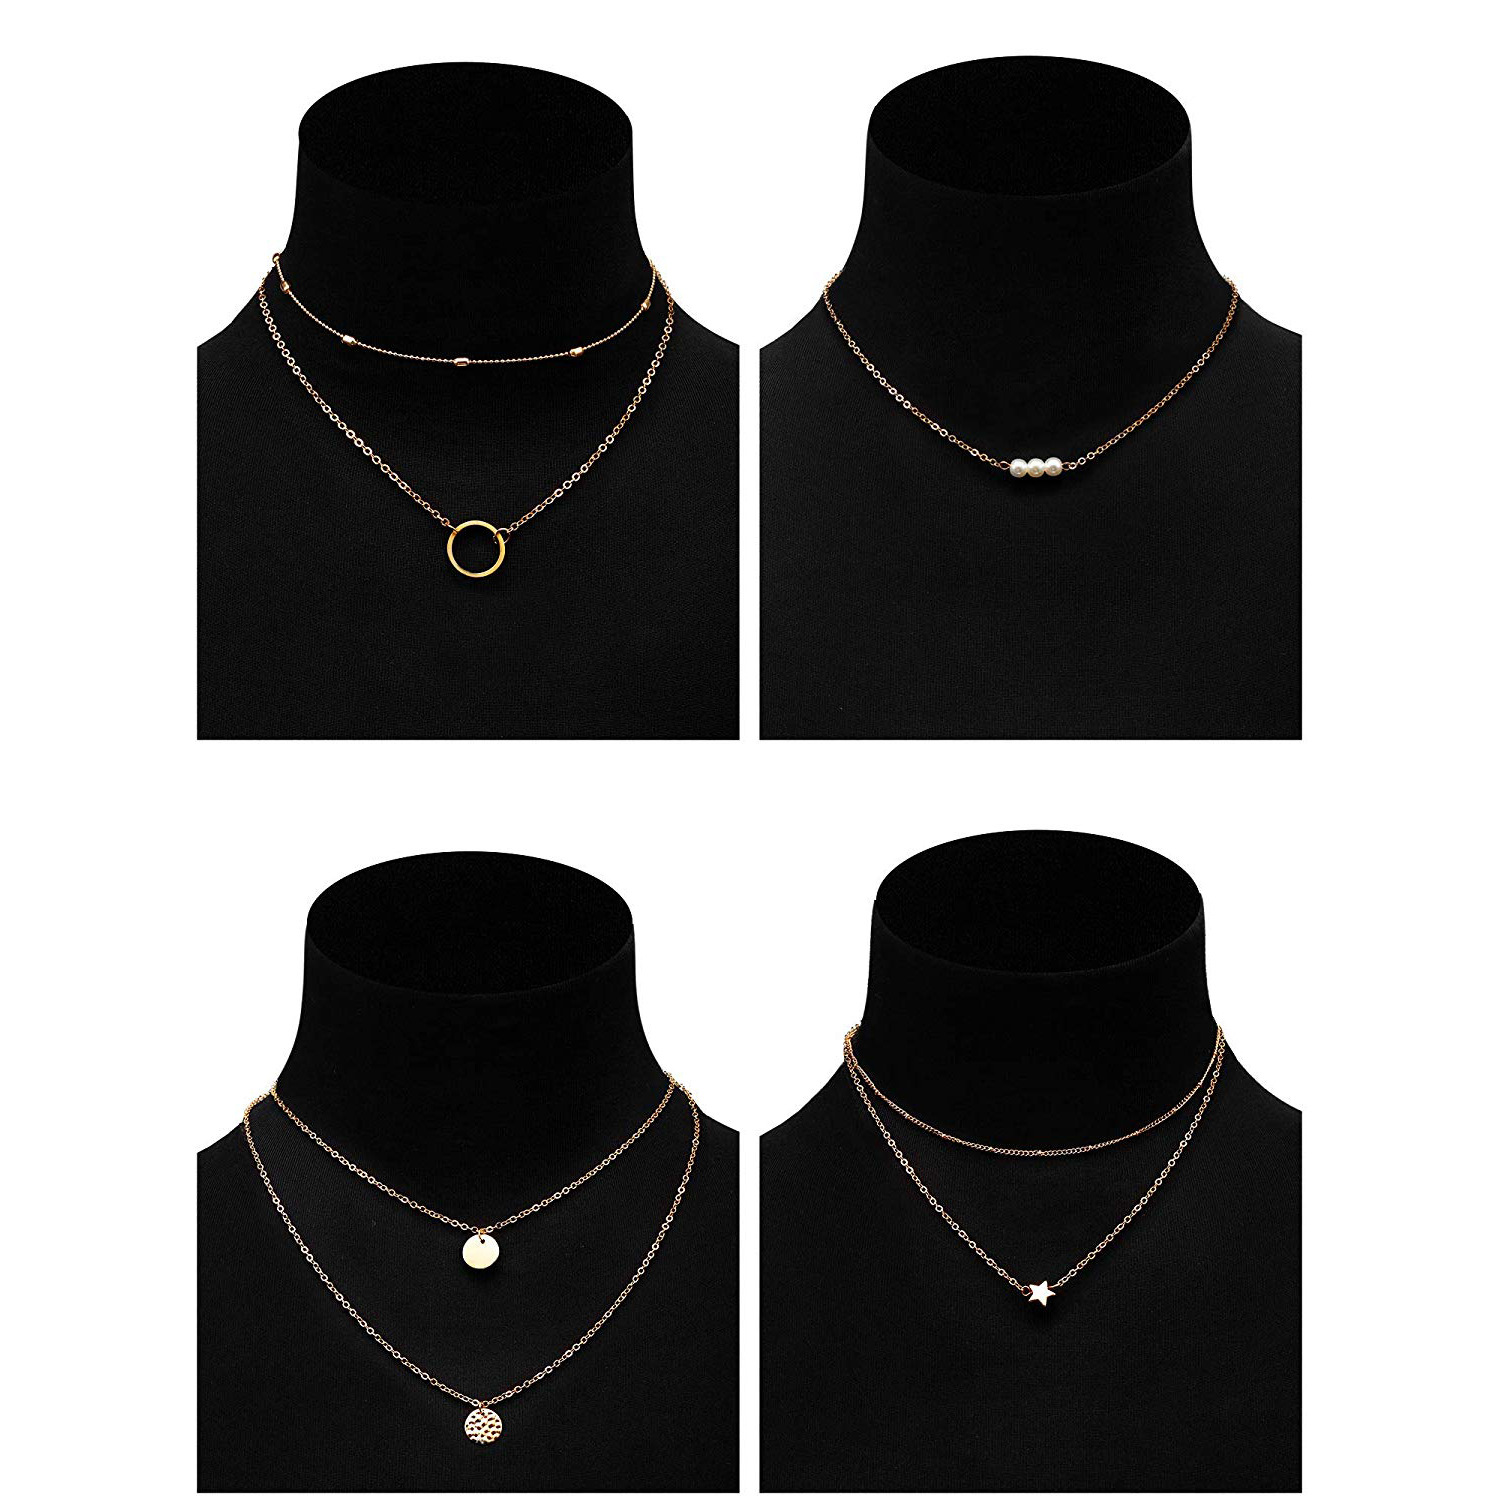 4 Pcs Set Multi layer Pendant Necklace Women Trendy Pearl Star Circle Adjustable Clavicle Chain Necklace A022 in Chain Necklaces from Jewelry Accessories